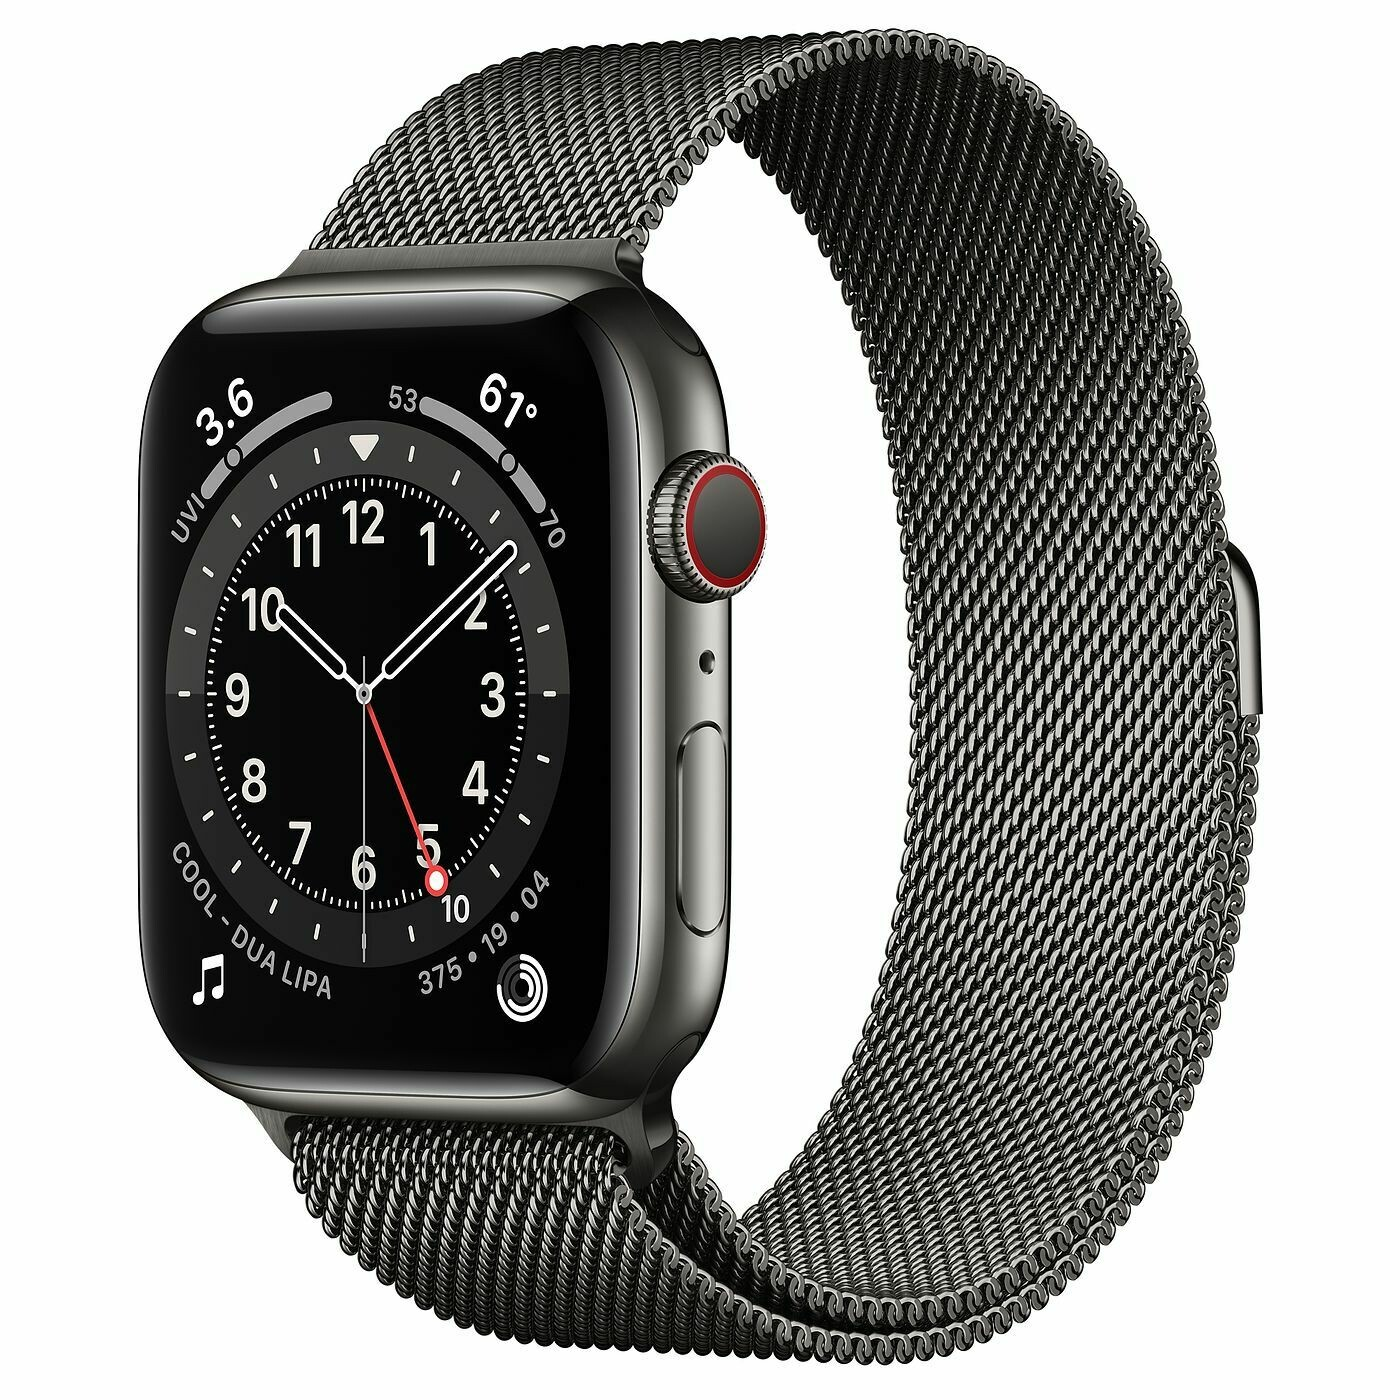 Часы Apple Watch Series 6 GPS + Cellular 44mm Stainless Steel Case with Milanese Loop (Графит)